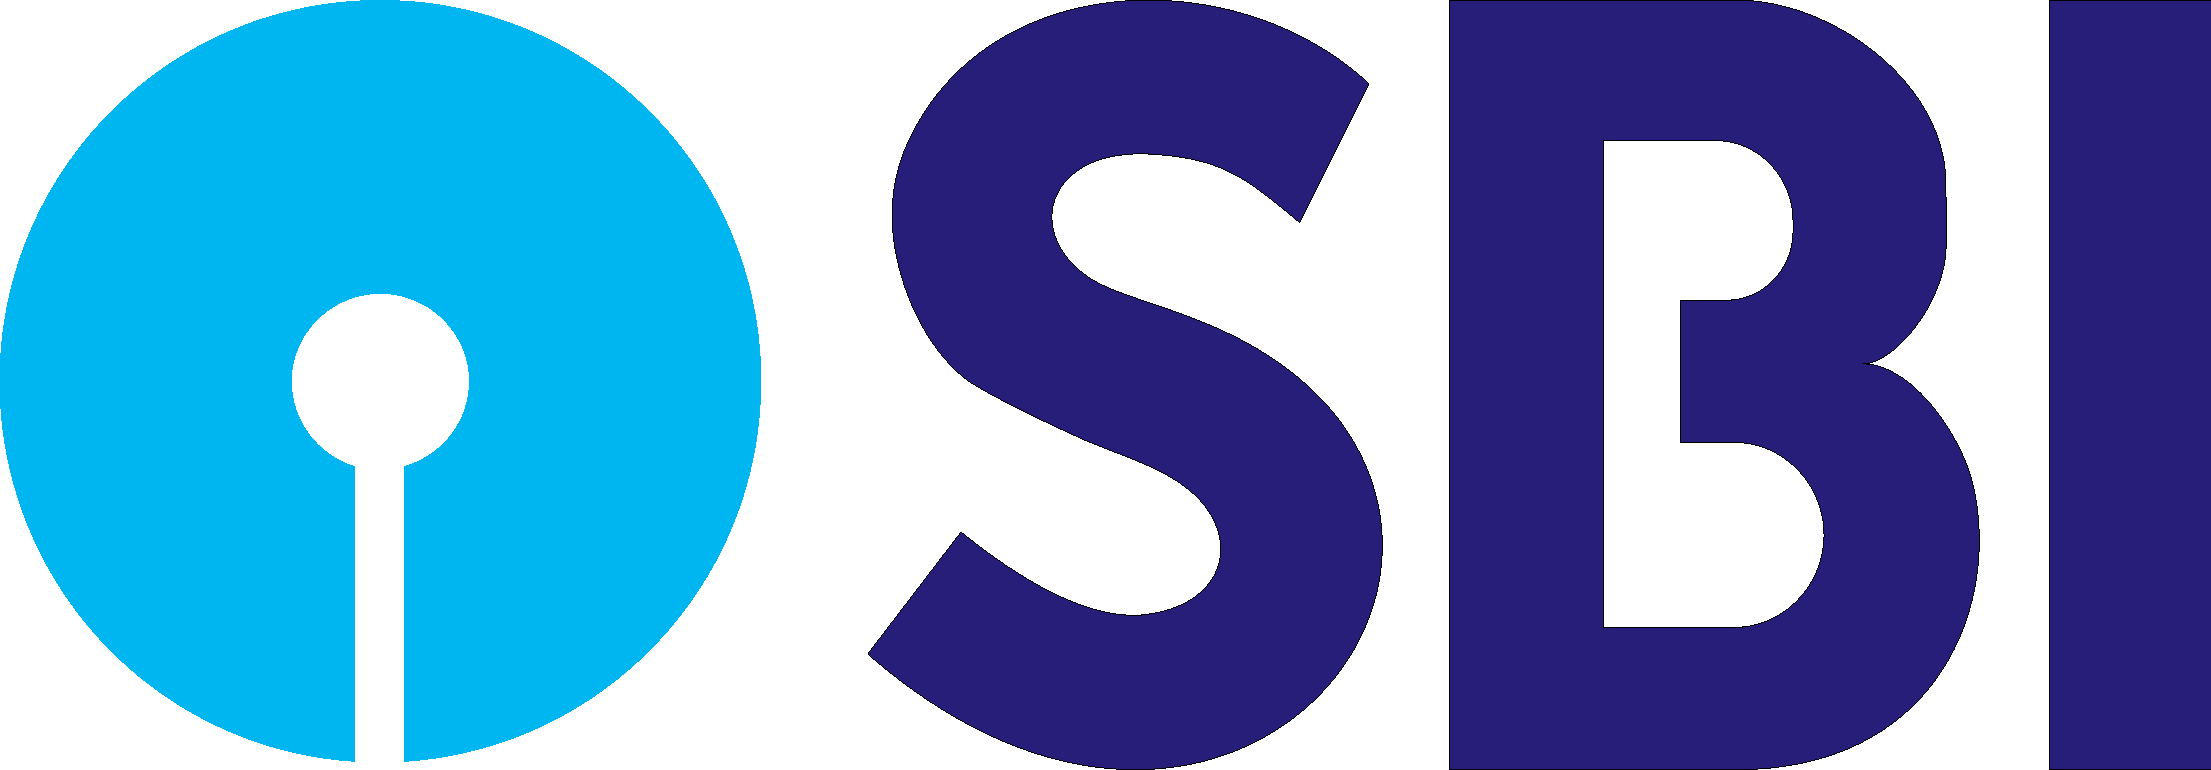 State Bank Of India (SBI)